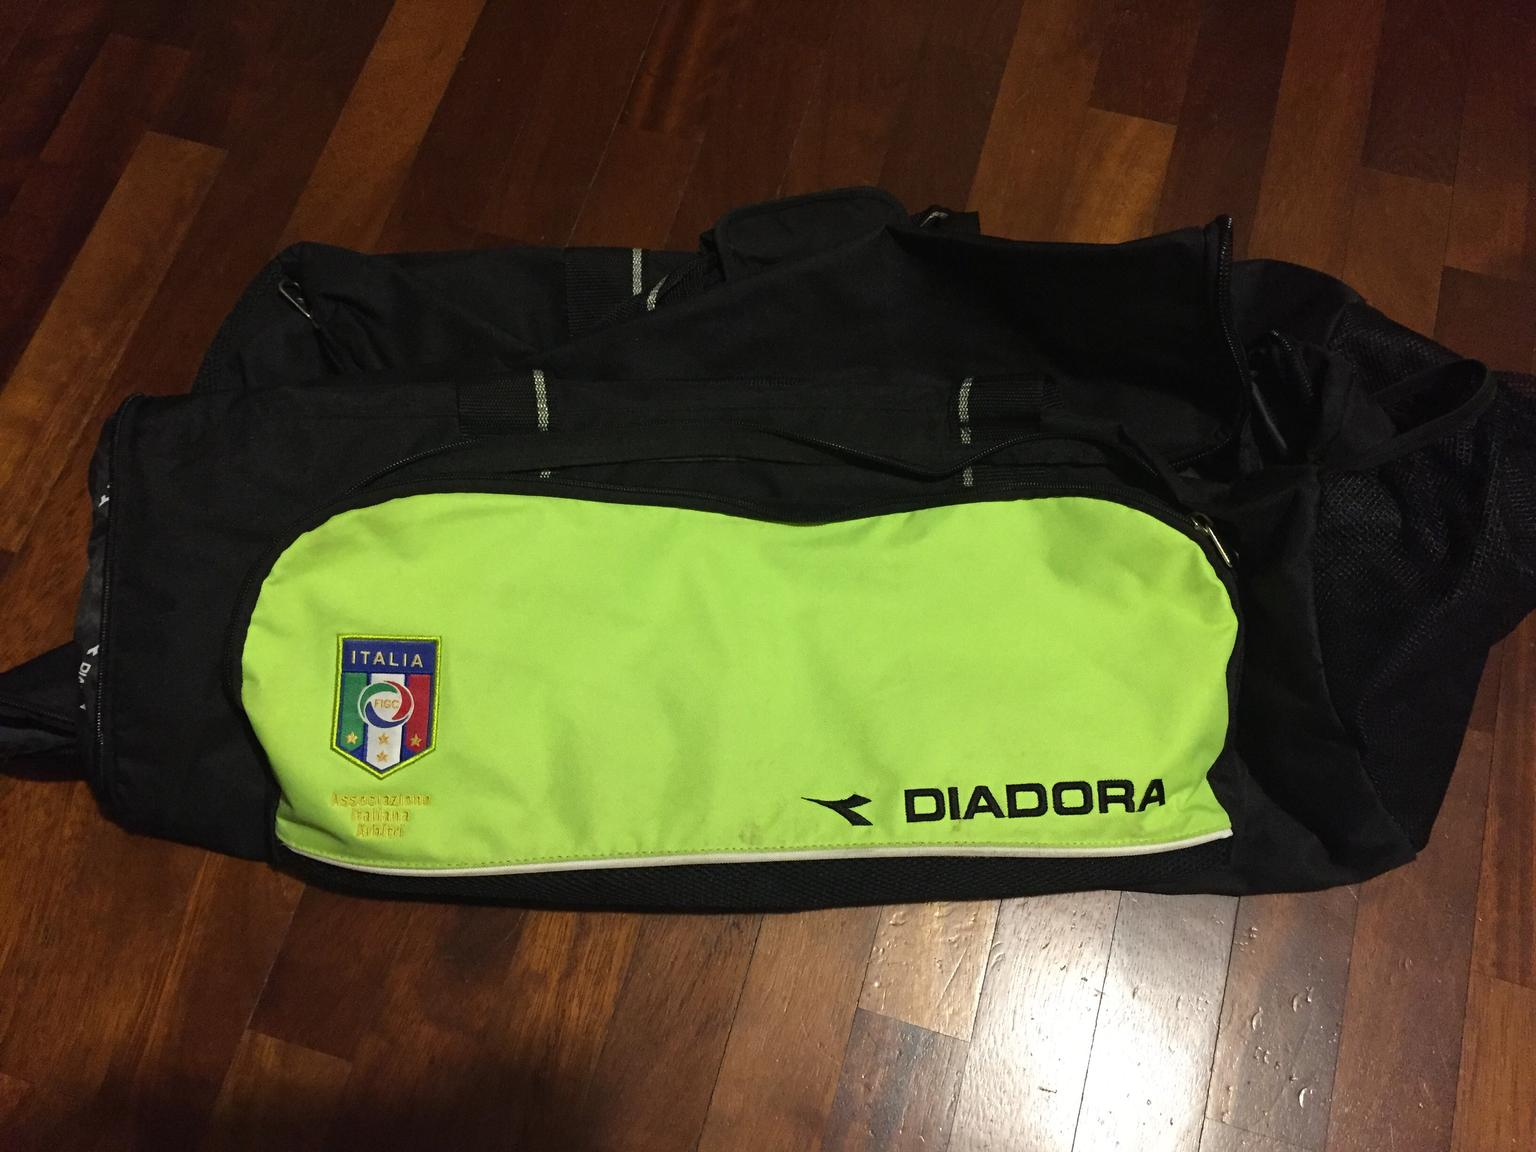 impact Affect how to use  Borsone AIA Diadora 2016/2017 in for €50.00 for sale   Shpock